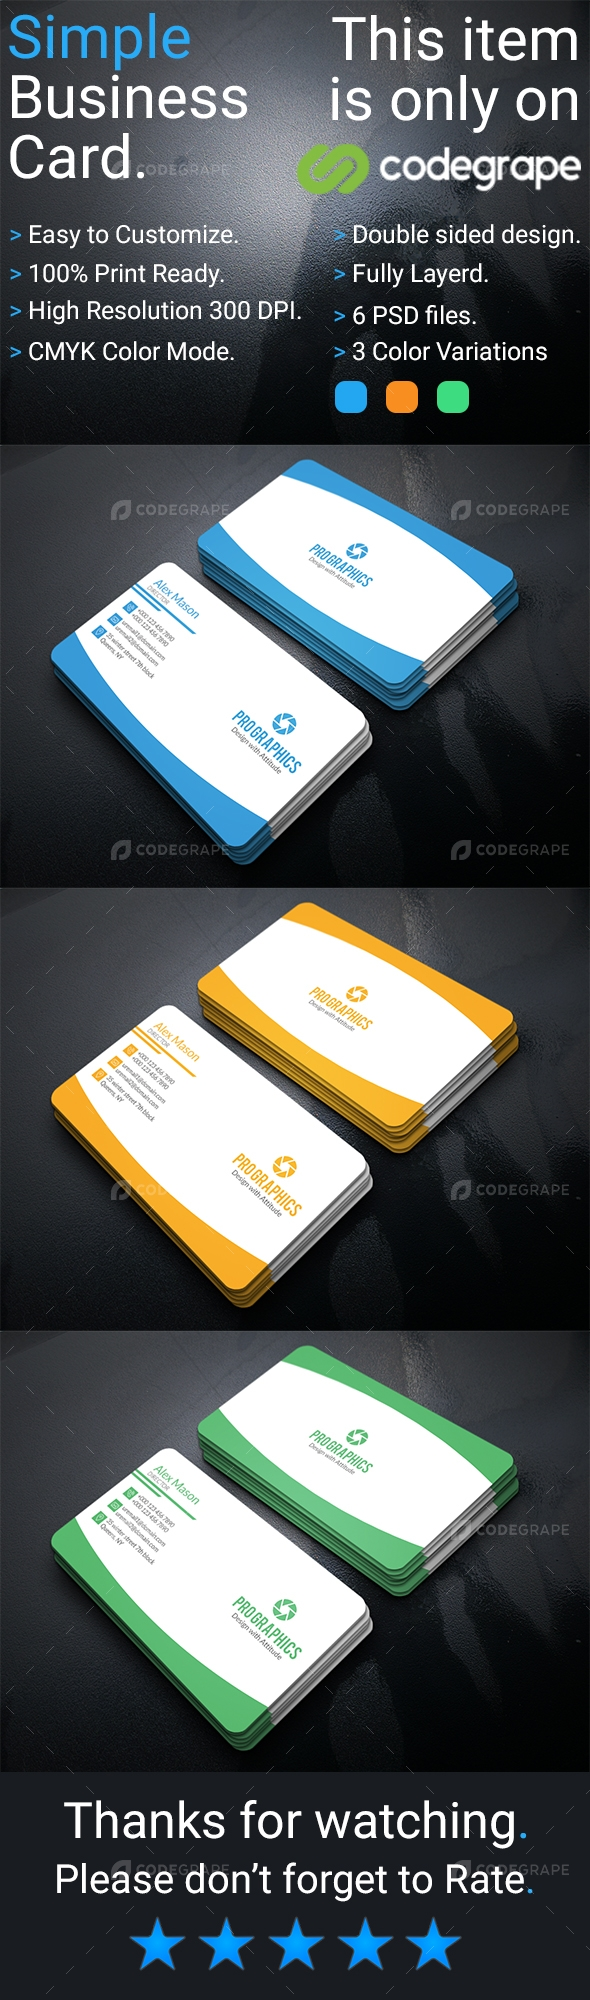 Simple Business Card Vol- 3